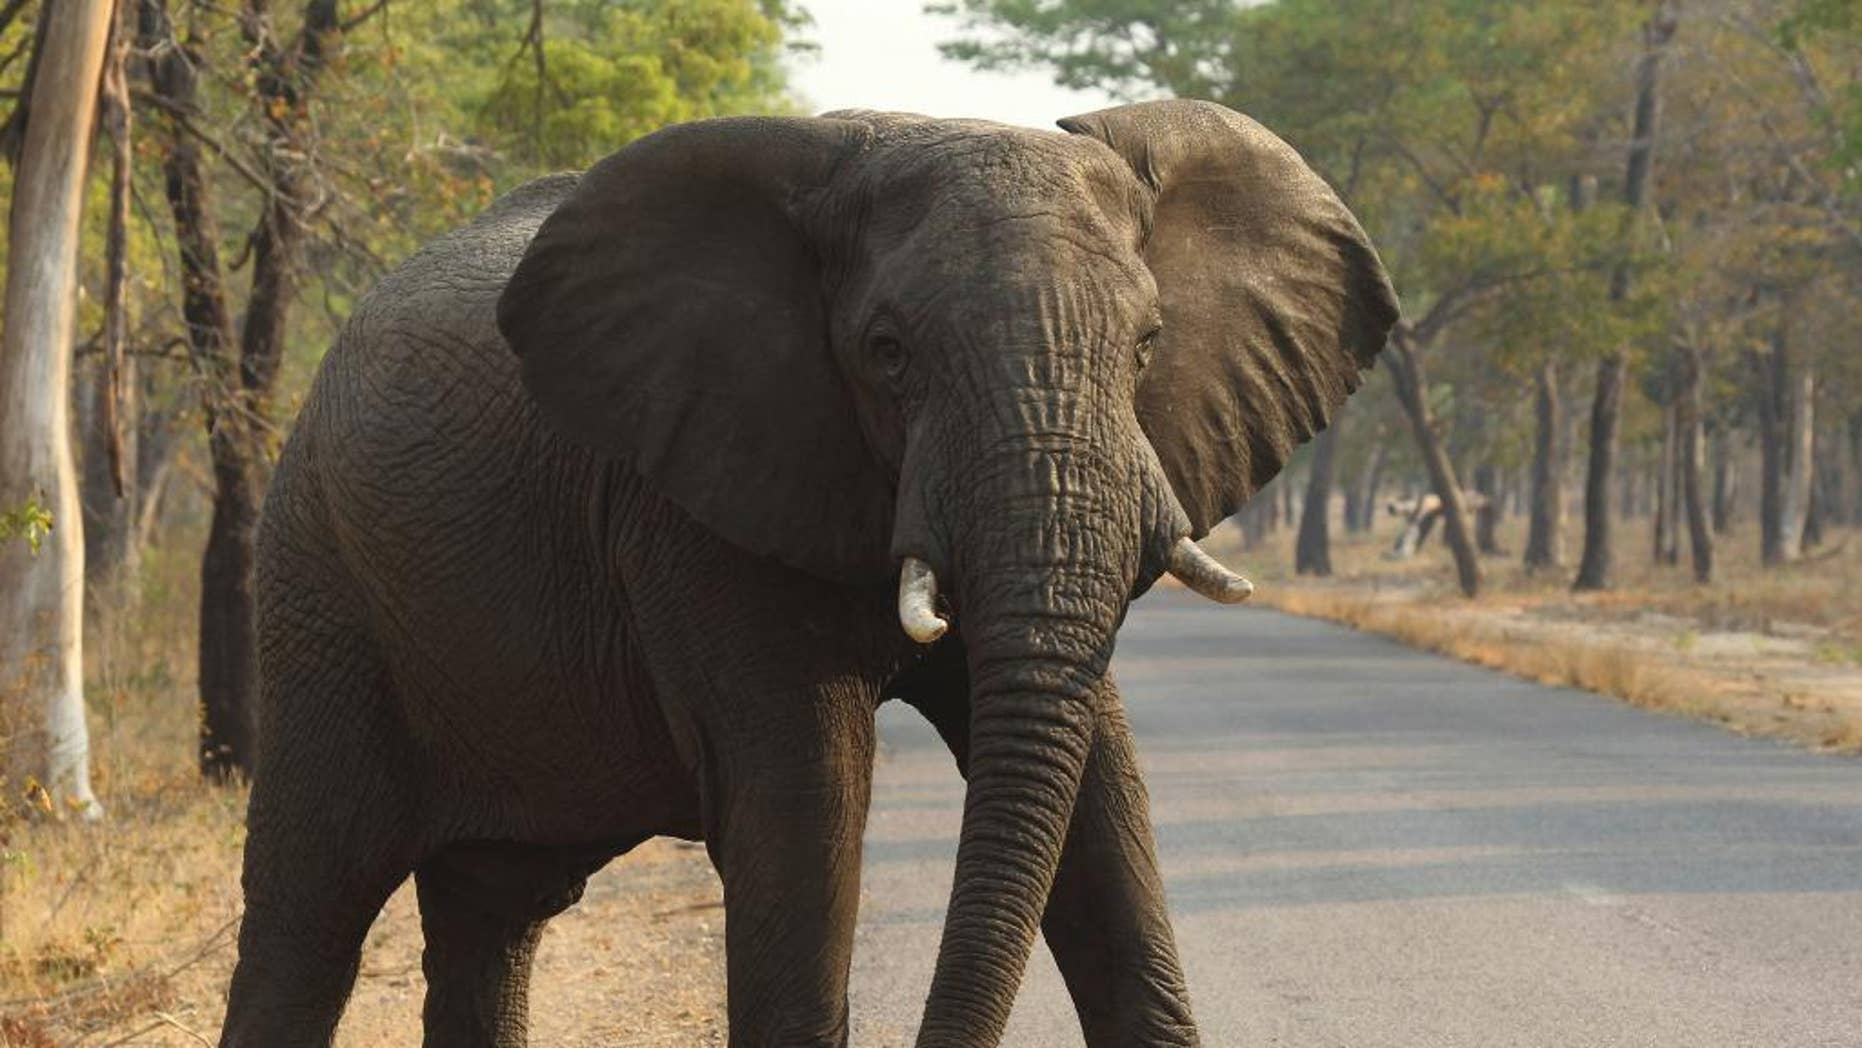 An elephant killed a driver in Thailand on Wednesday.